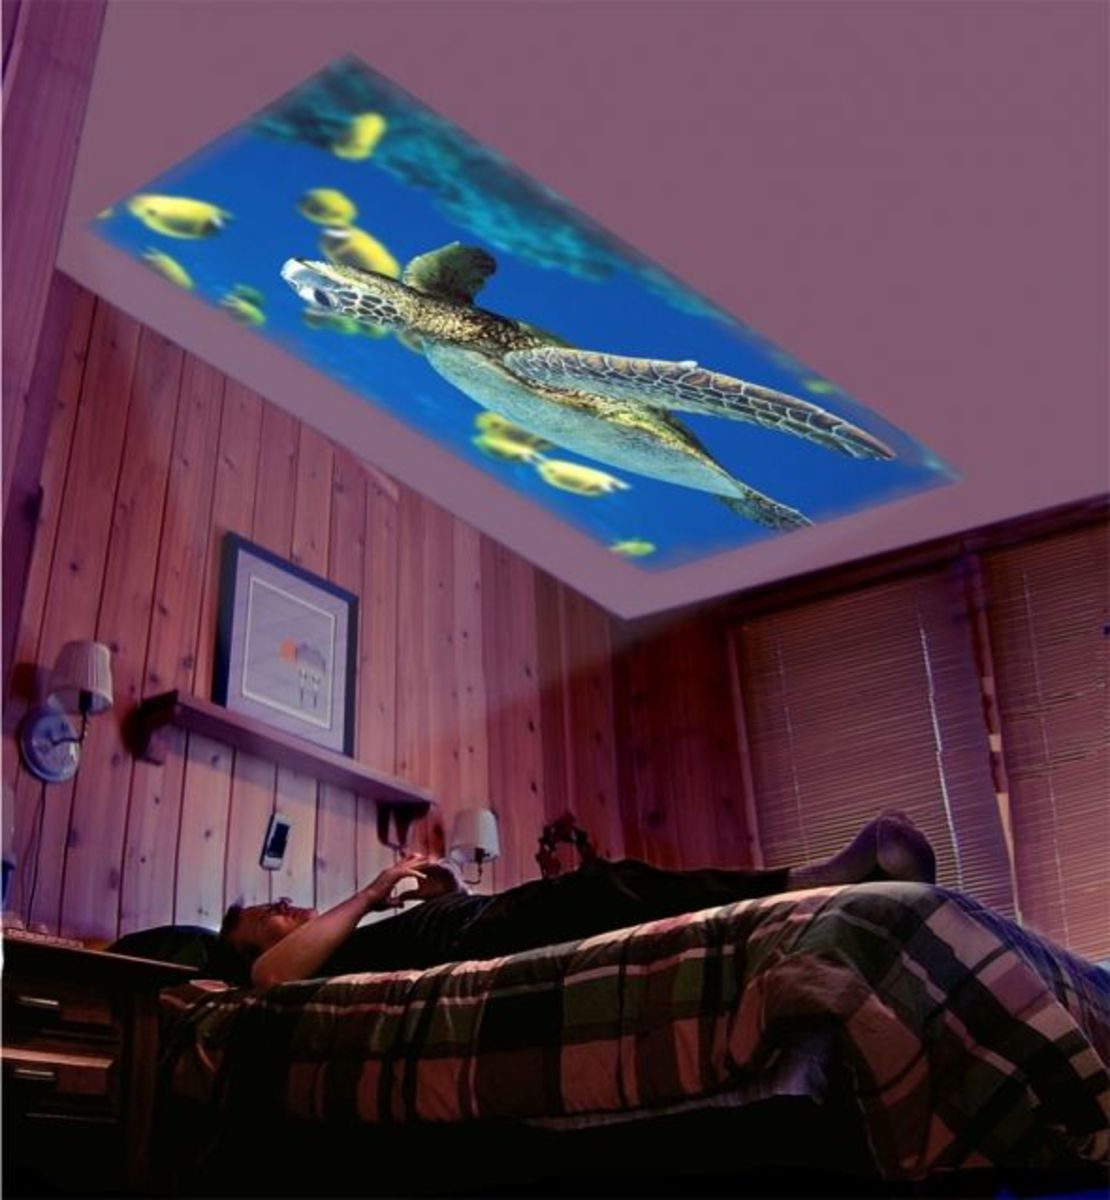 big-screen-home-theater-on-your-bedroom-ceiling-just-200